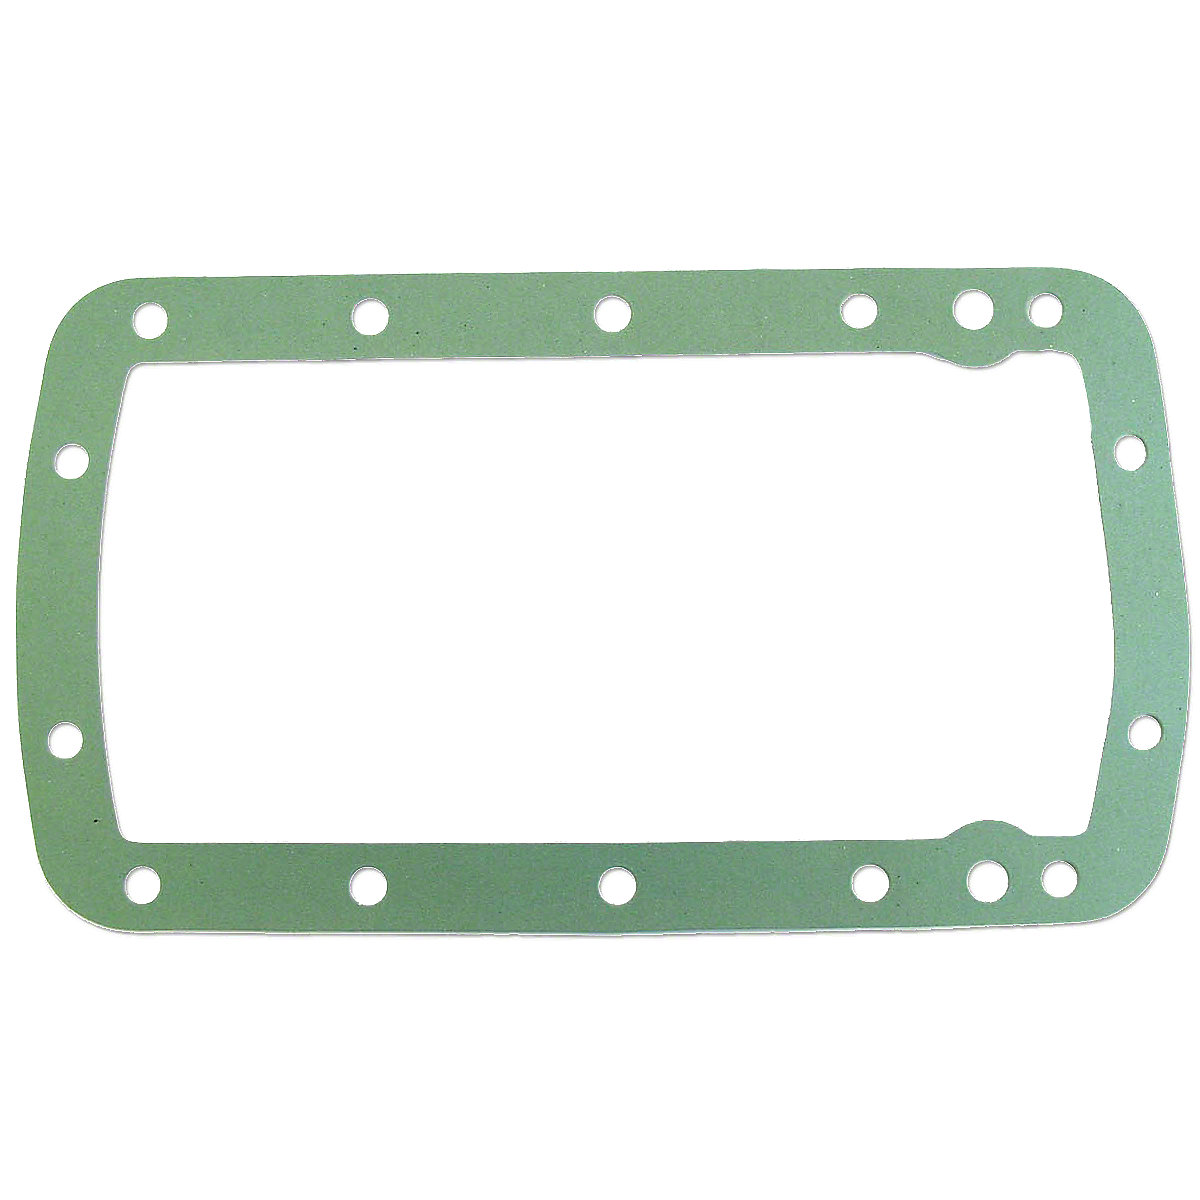 Hydraulic Lift Cover Gasket For Massey Ferguson: TE20, TEA20, TO20, TO30.